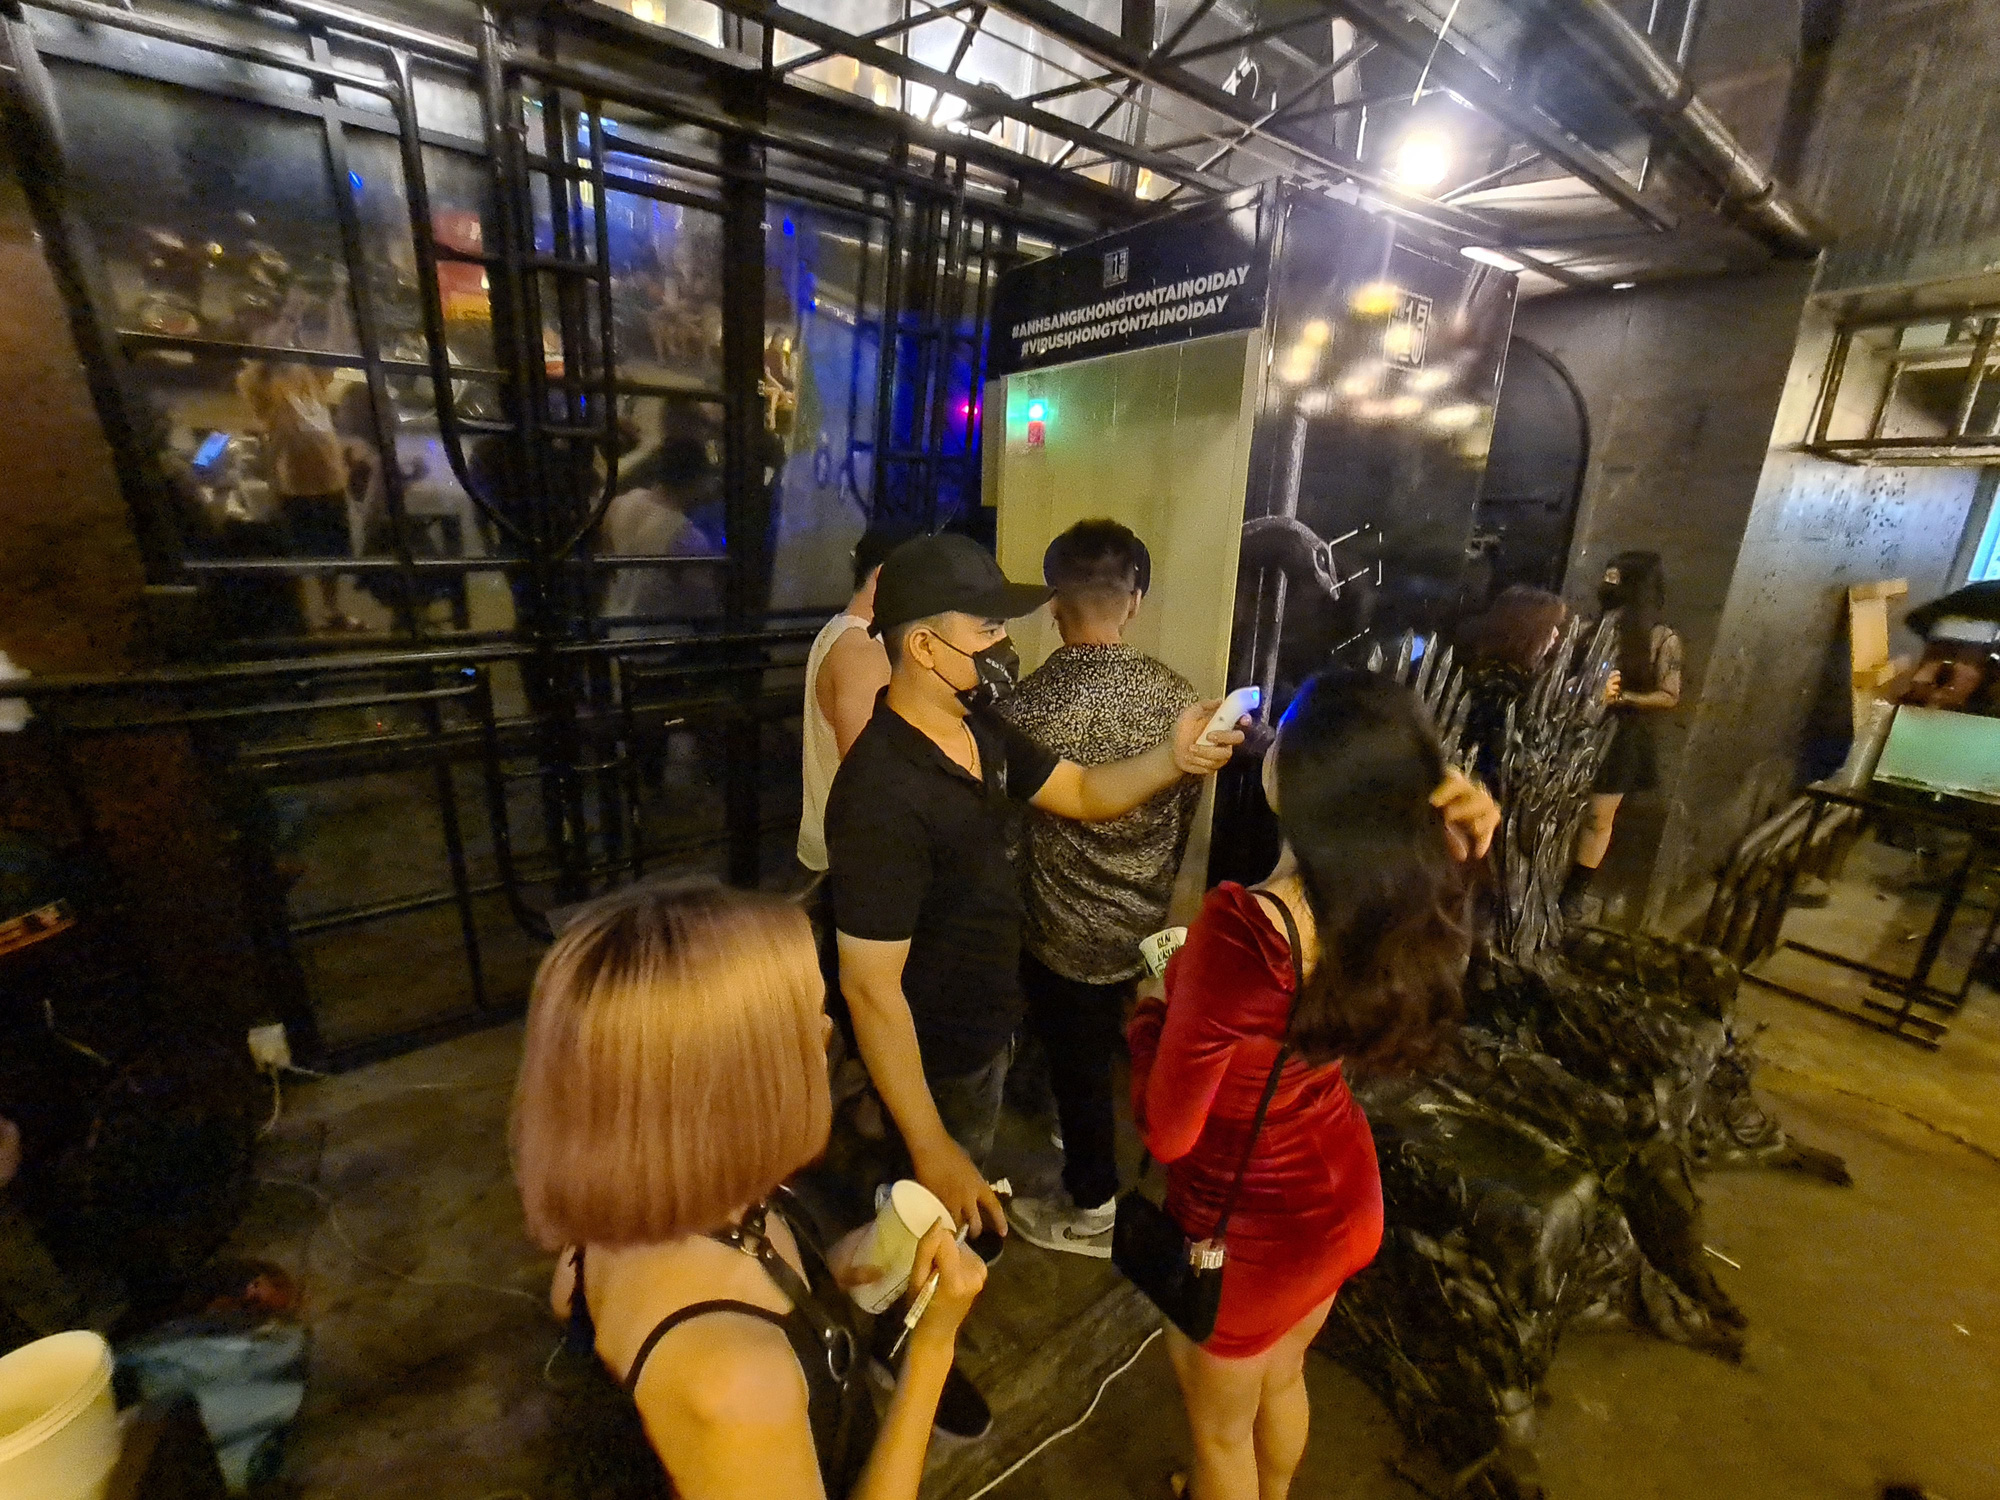 Customers have their temperature measured before entering a bar on Bui Vien Street in District 1, Ho Chi Minh City on May 9, 2020. Photo: Ngoc Hien / Tuoi Tre